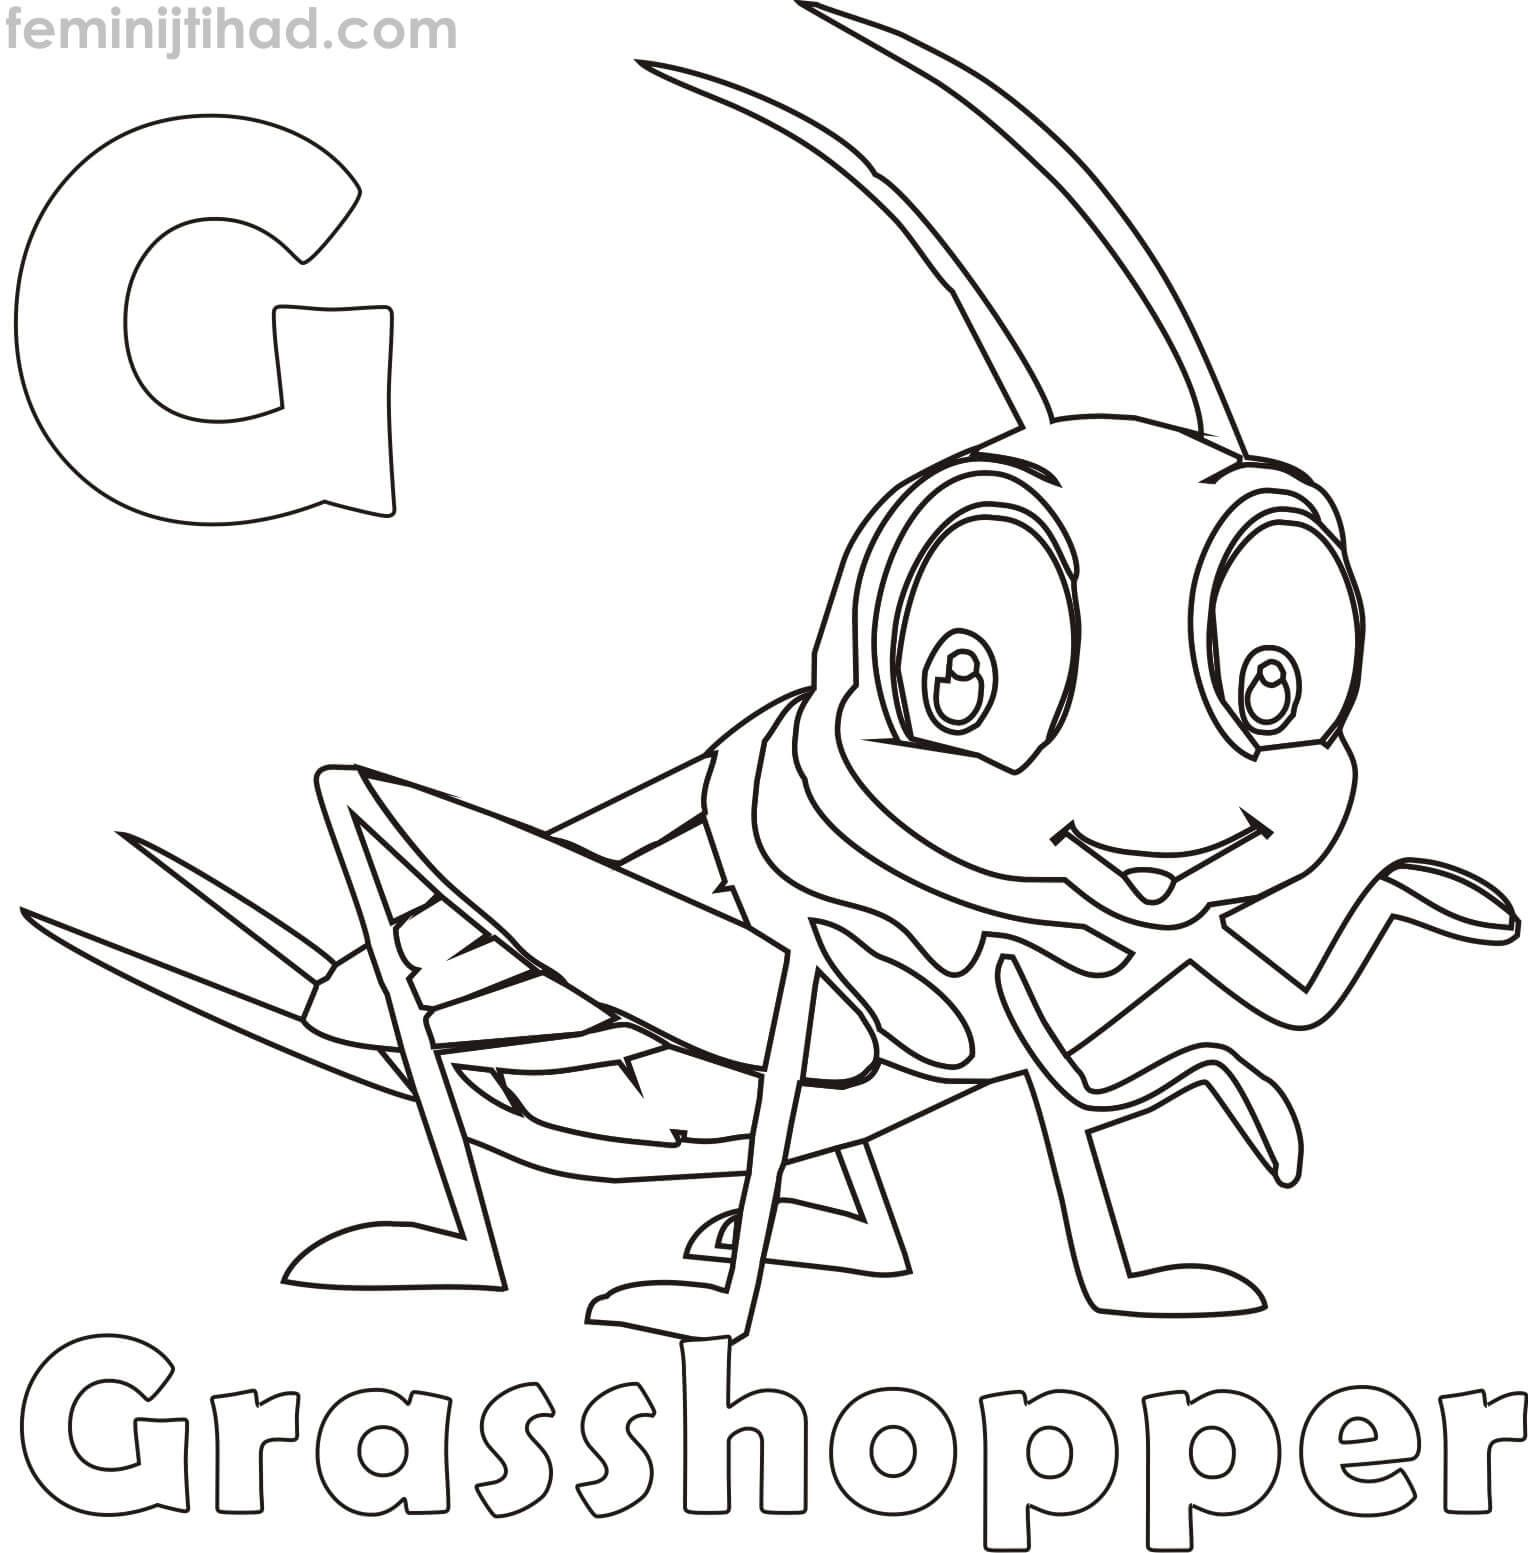 G For Grasshopper Coloring Pages For Kids